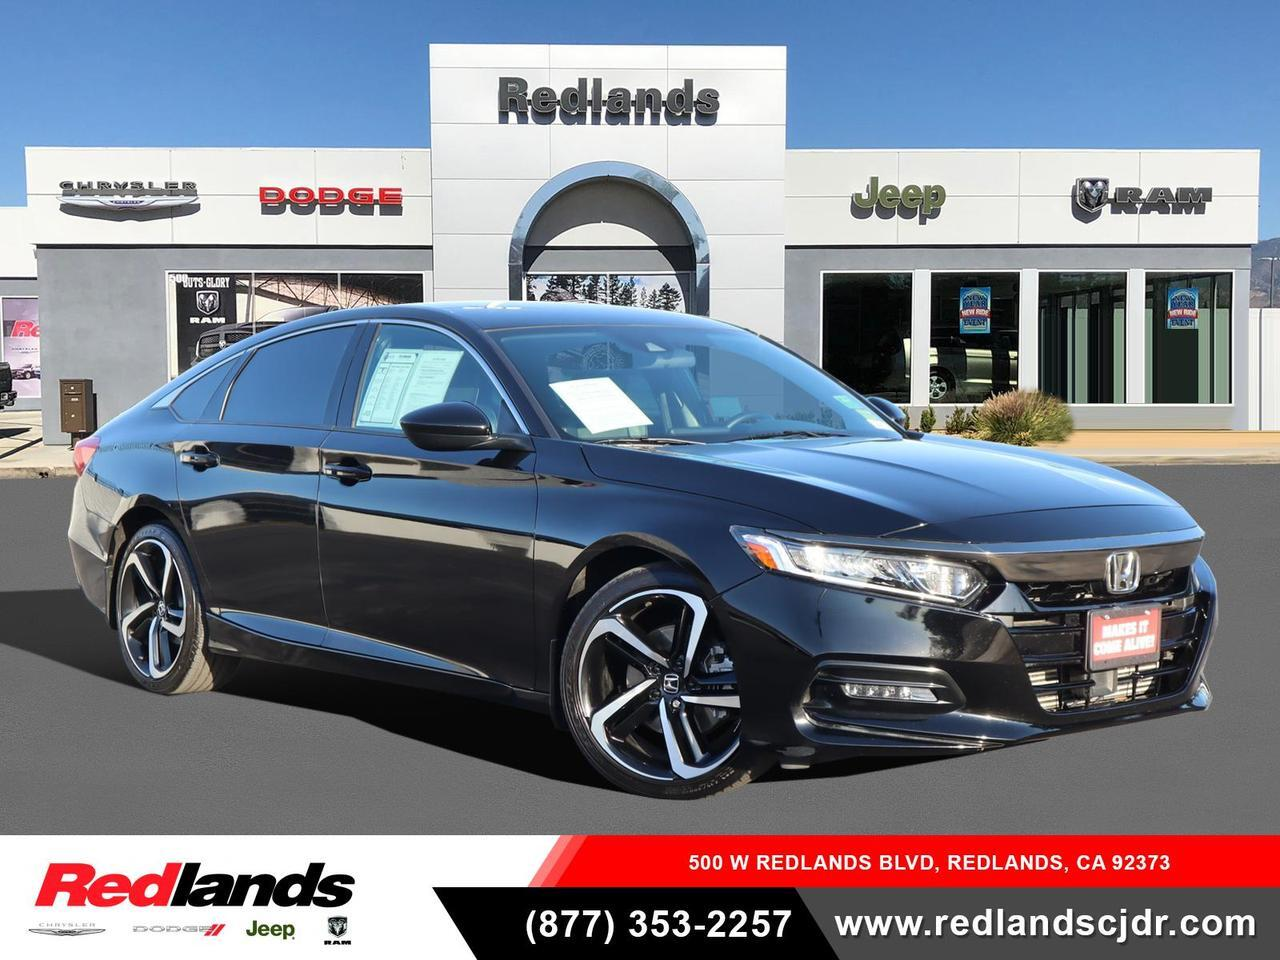 2018 Honda Accord Sedan Sport 1.5T Redlands CA